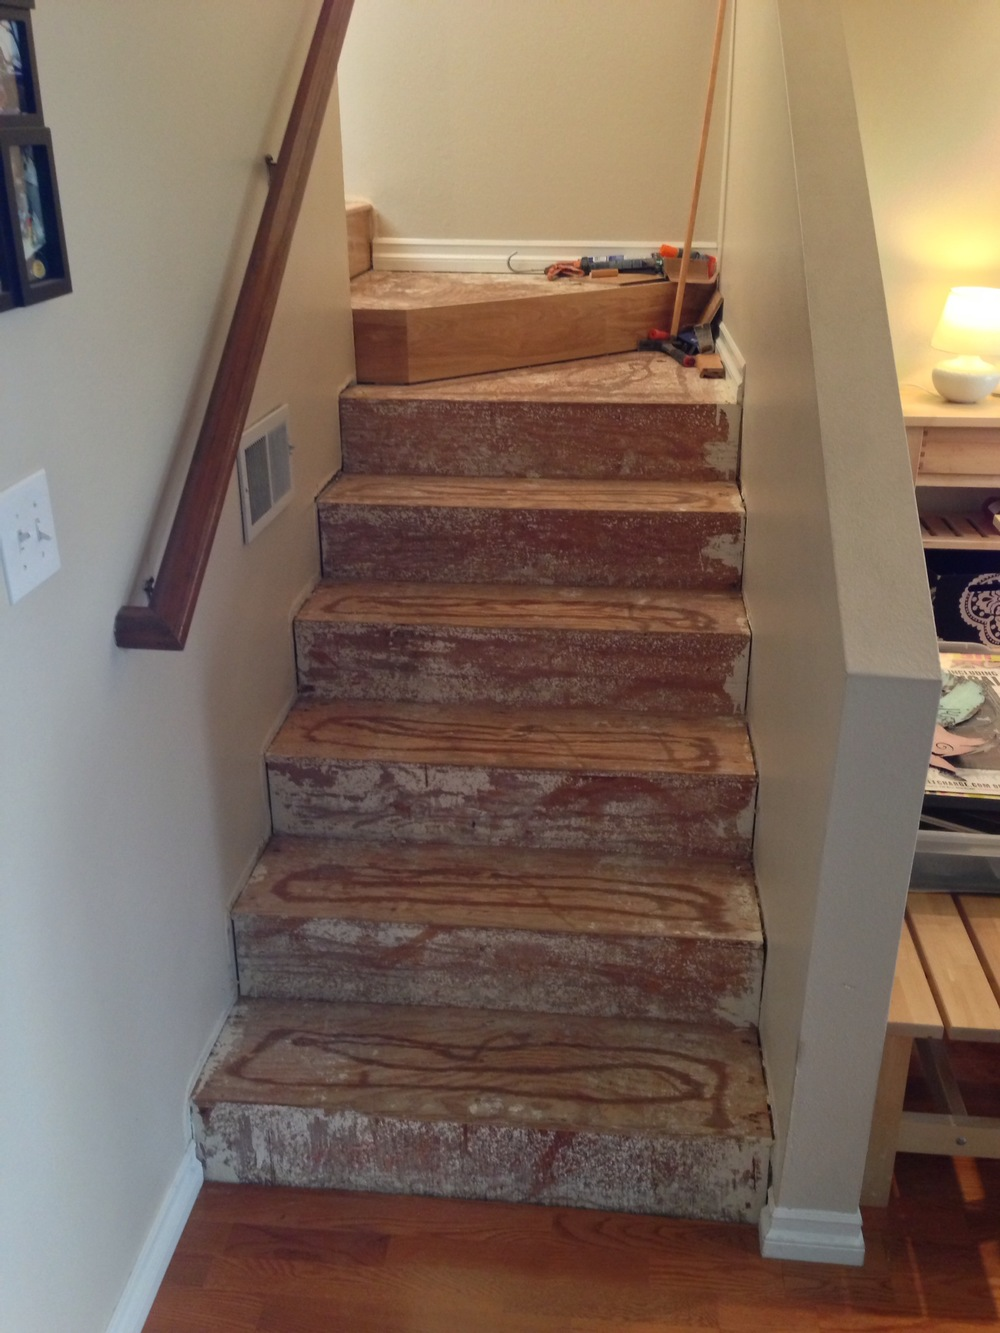 Bare stairs